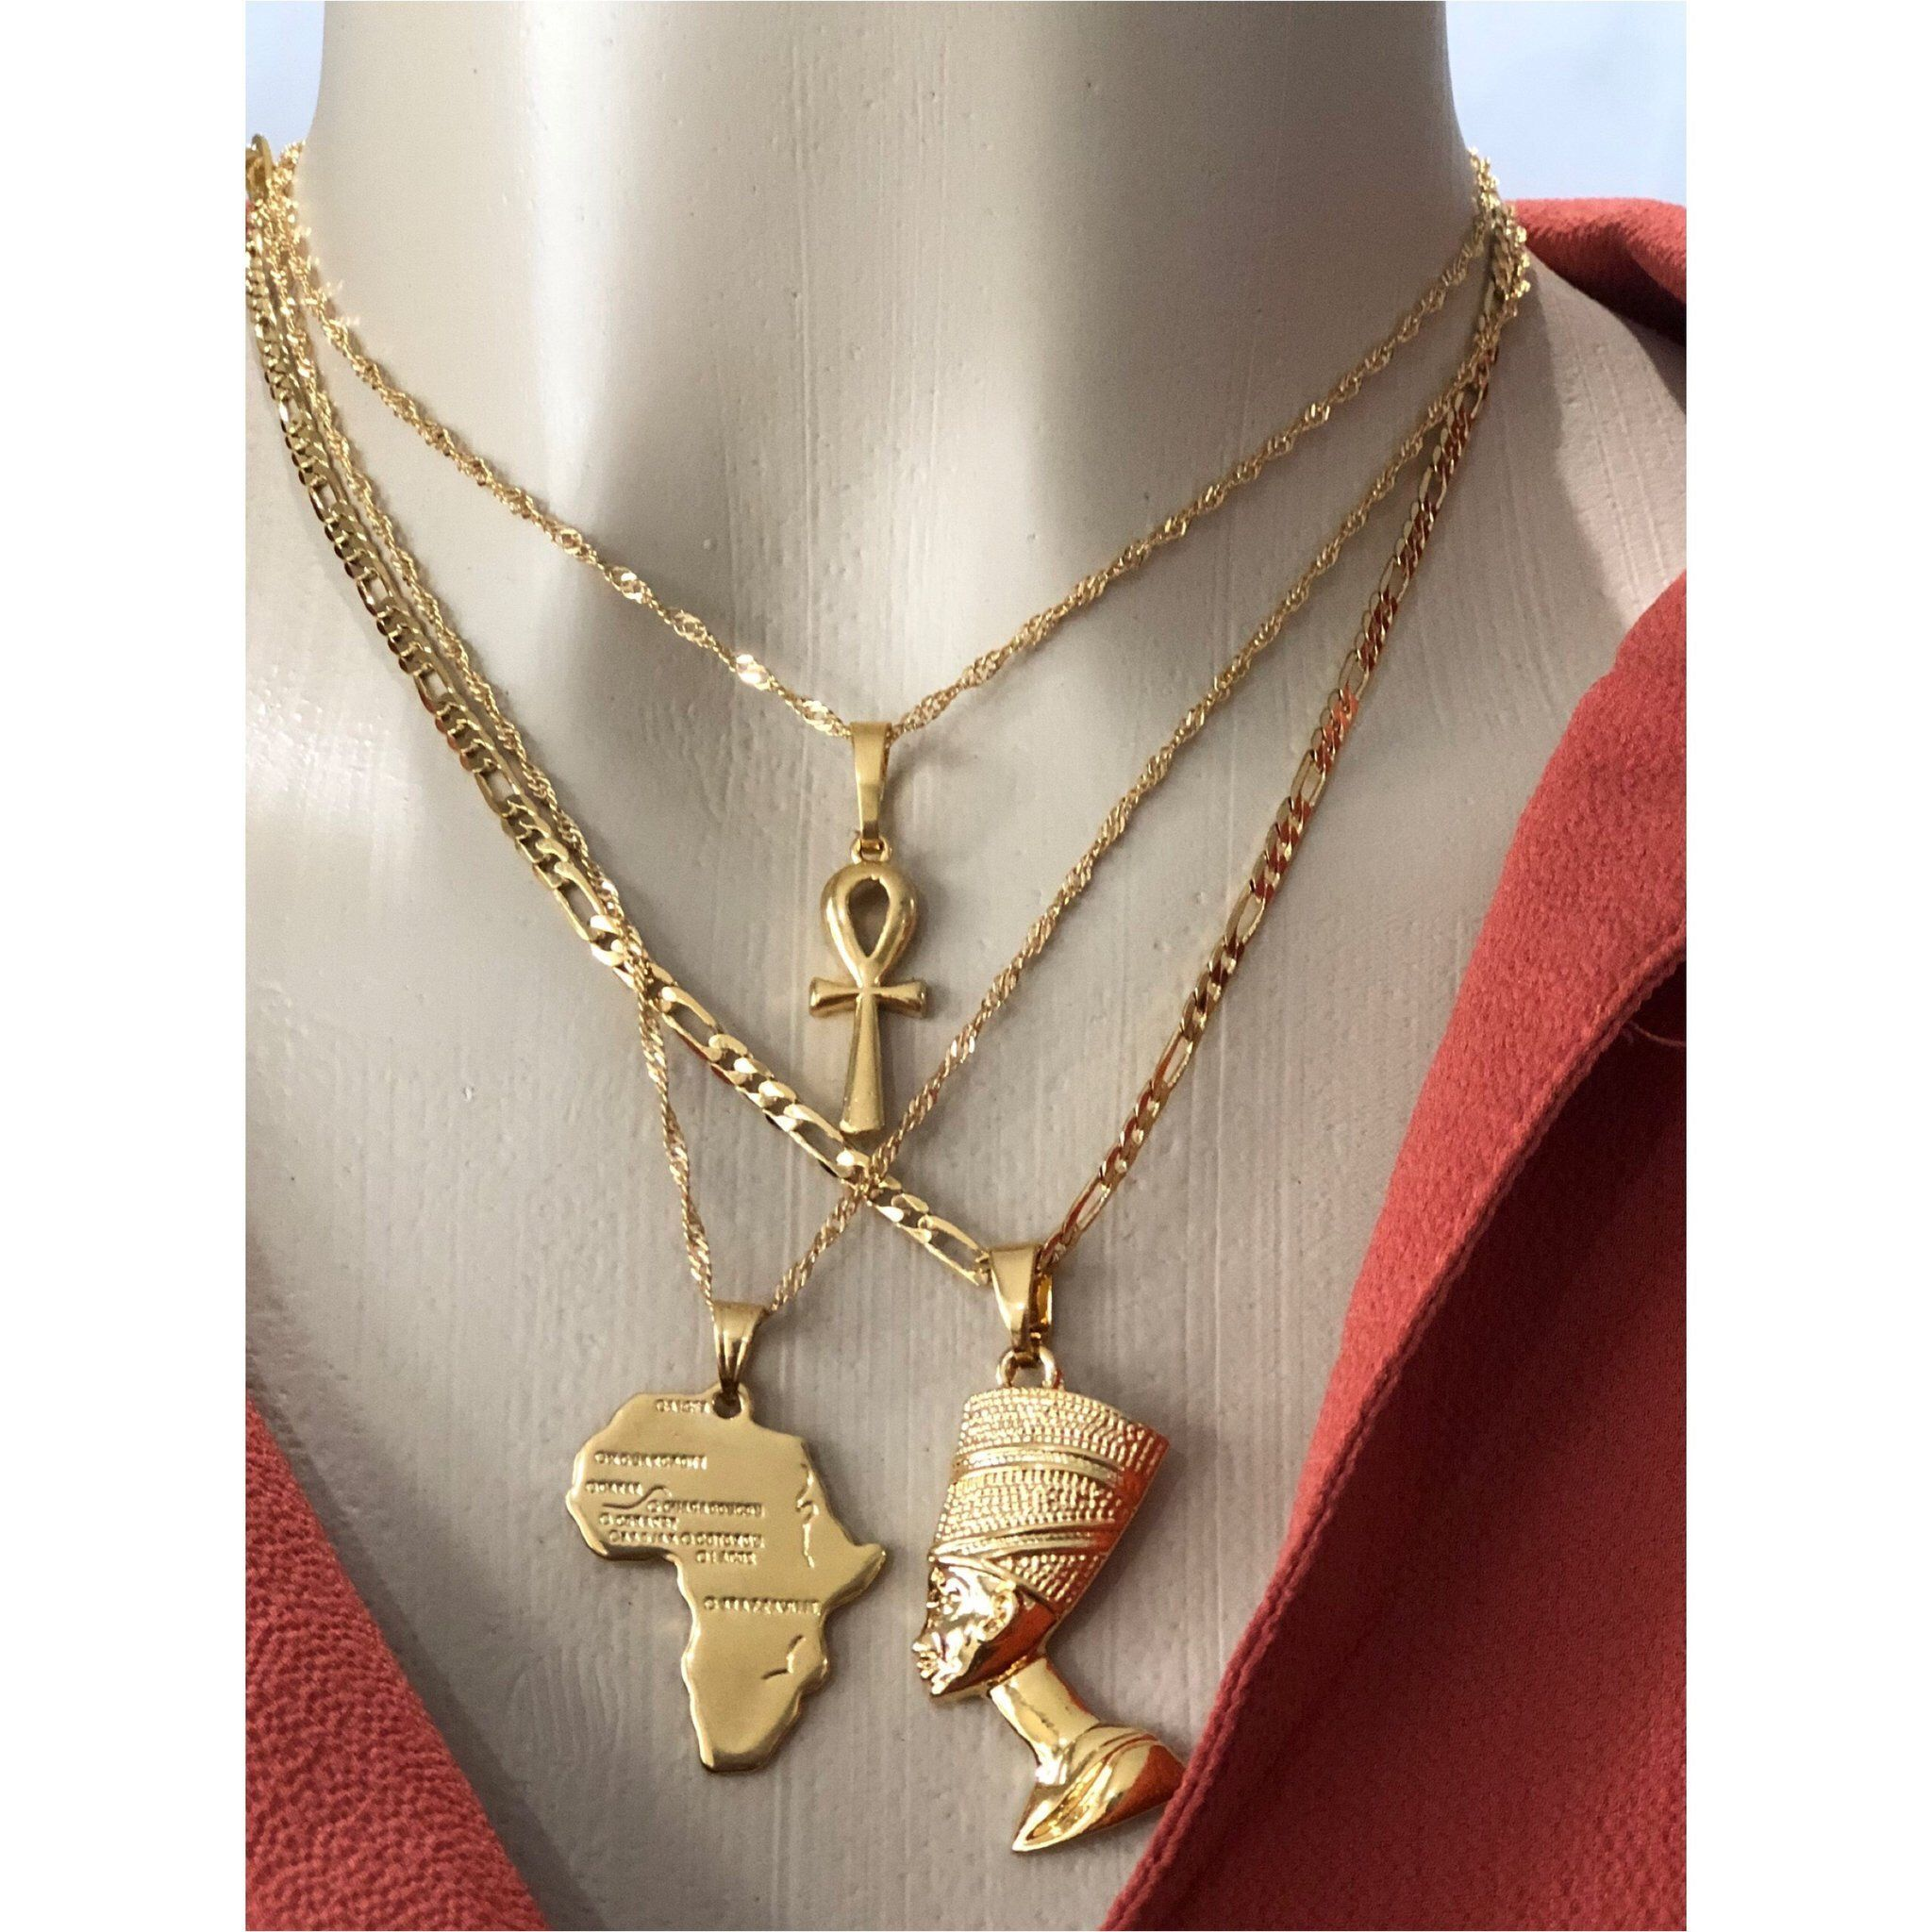 Egyptian Queen Nefertiti Pendant Gold Necklace VALENTINES Day Gift Beautiful